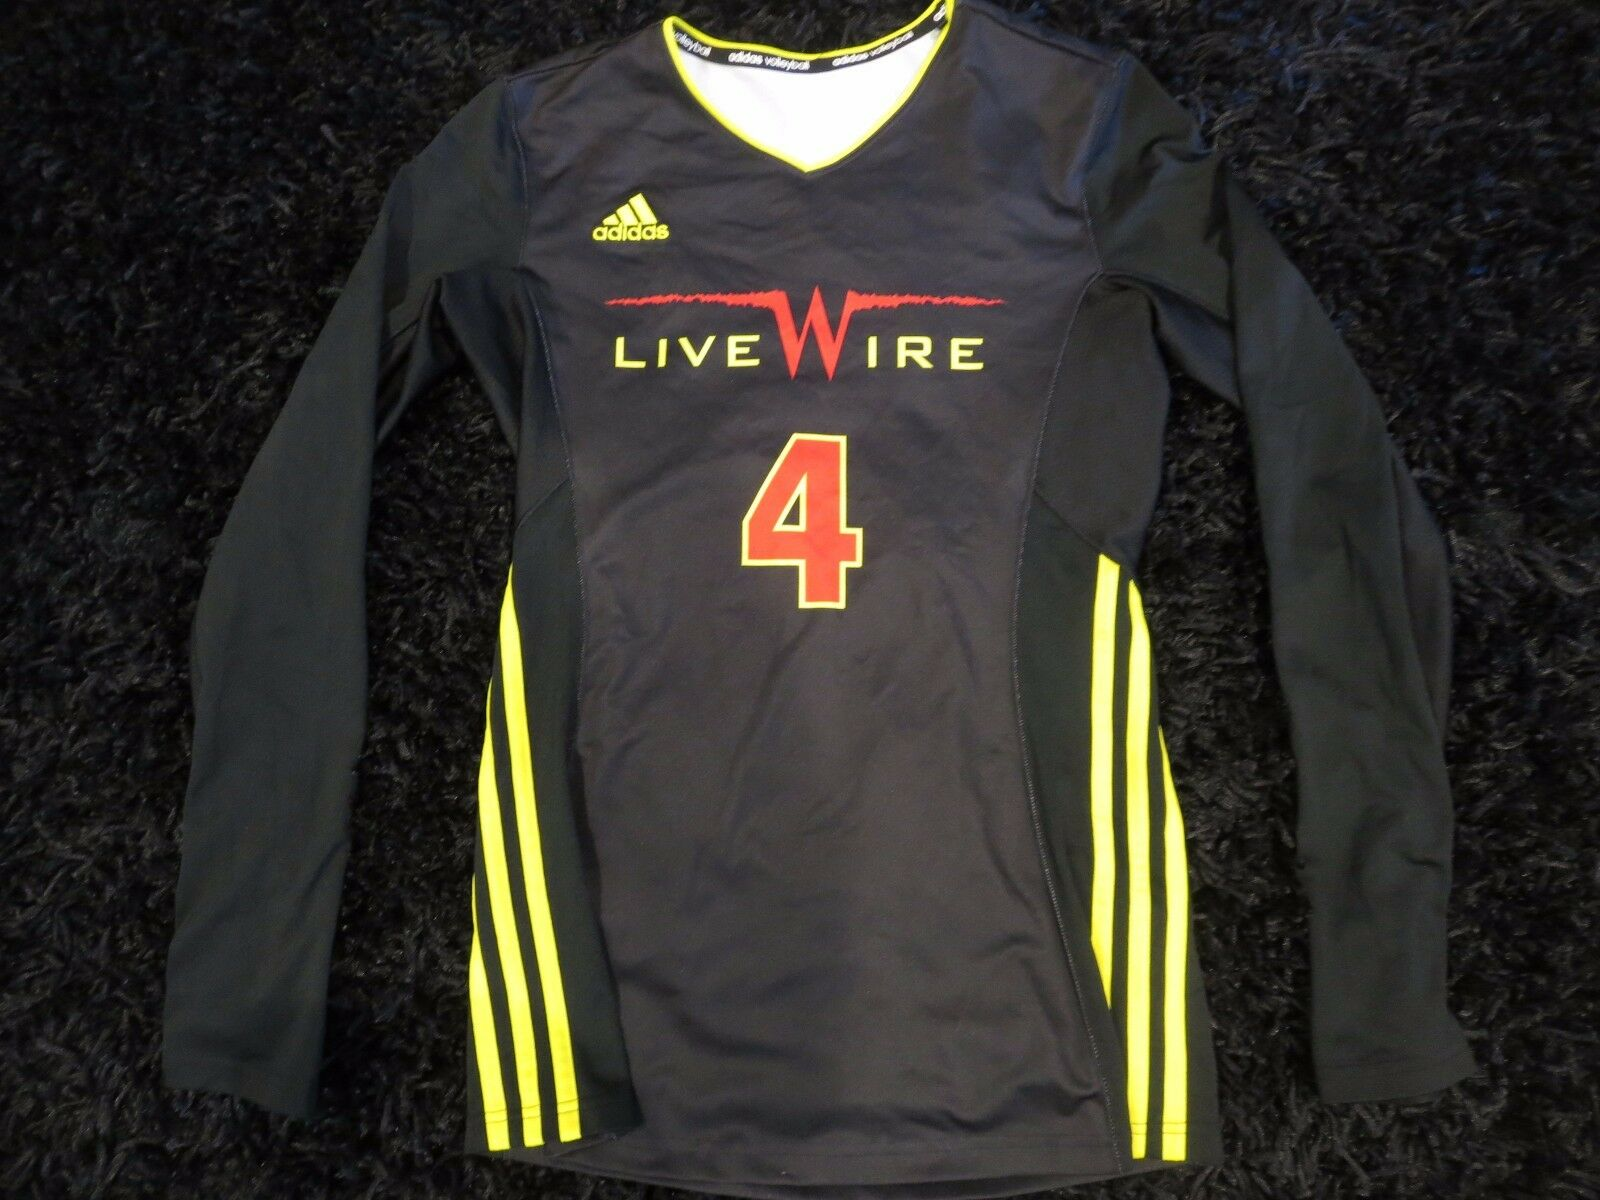 Livewire Arizona Scottsdale Volleyball Club Adidas Trikot Sm Klein Damen